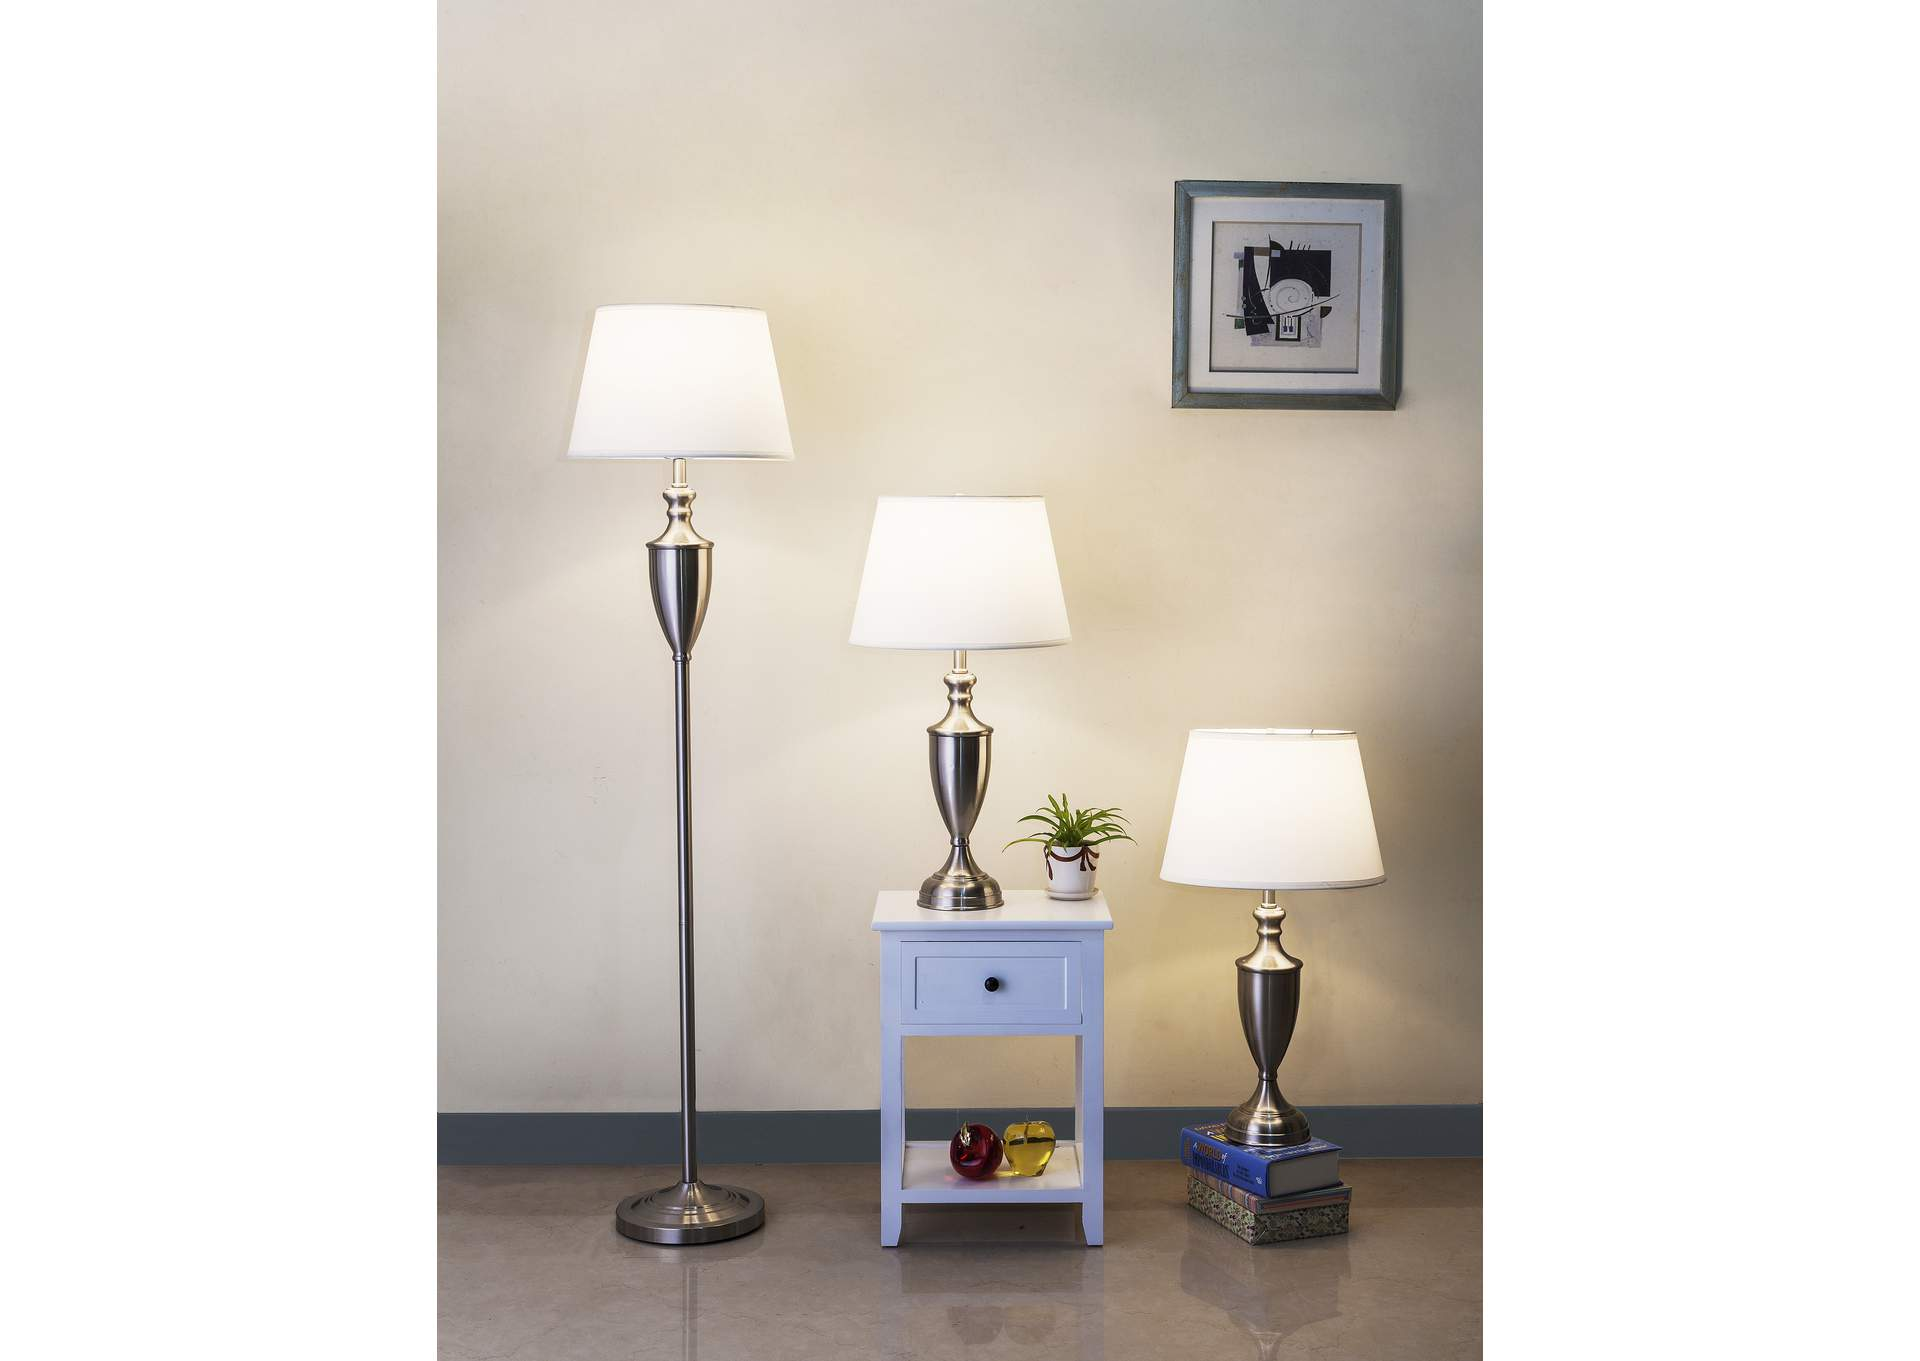 Revel Brown Floor Lamp & 2 Table Lamps,Crown Mark